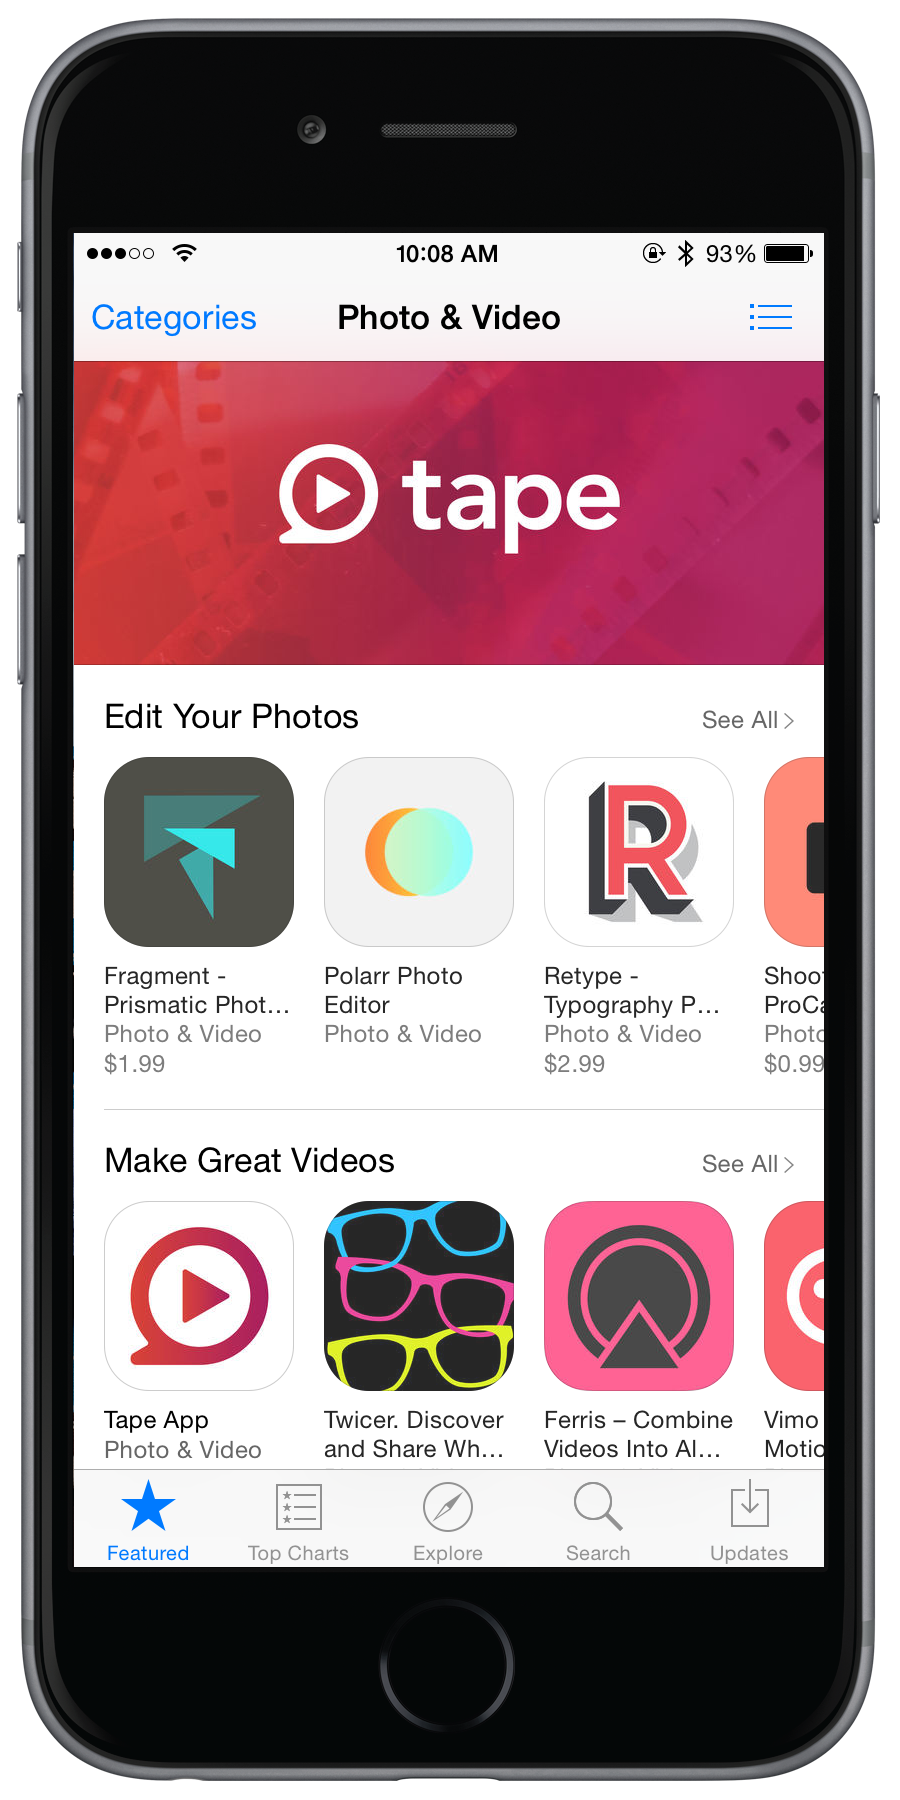 tape-apple-featured1